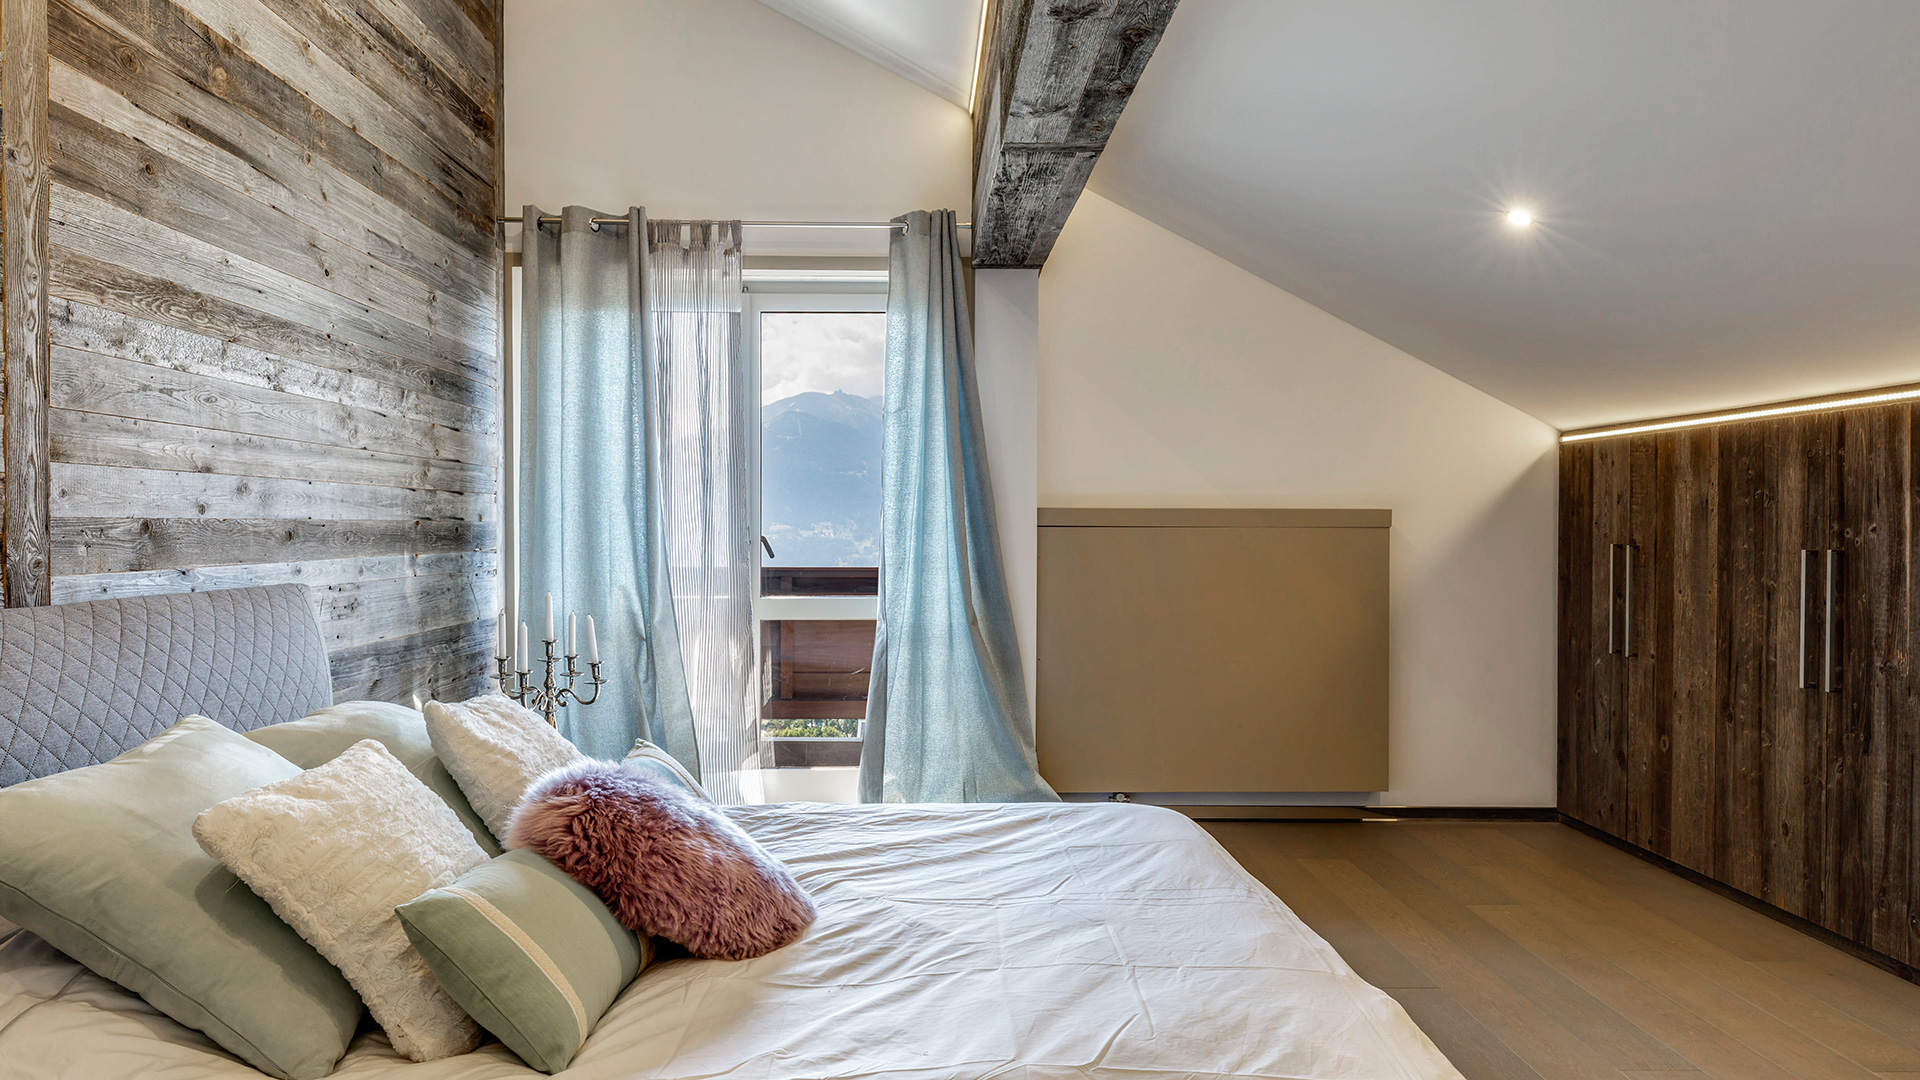 San Giorgio Apartments, Switzerland